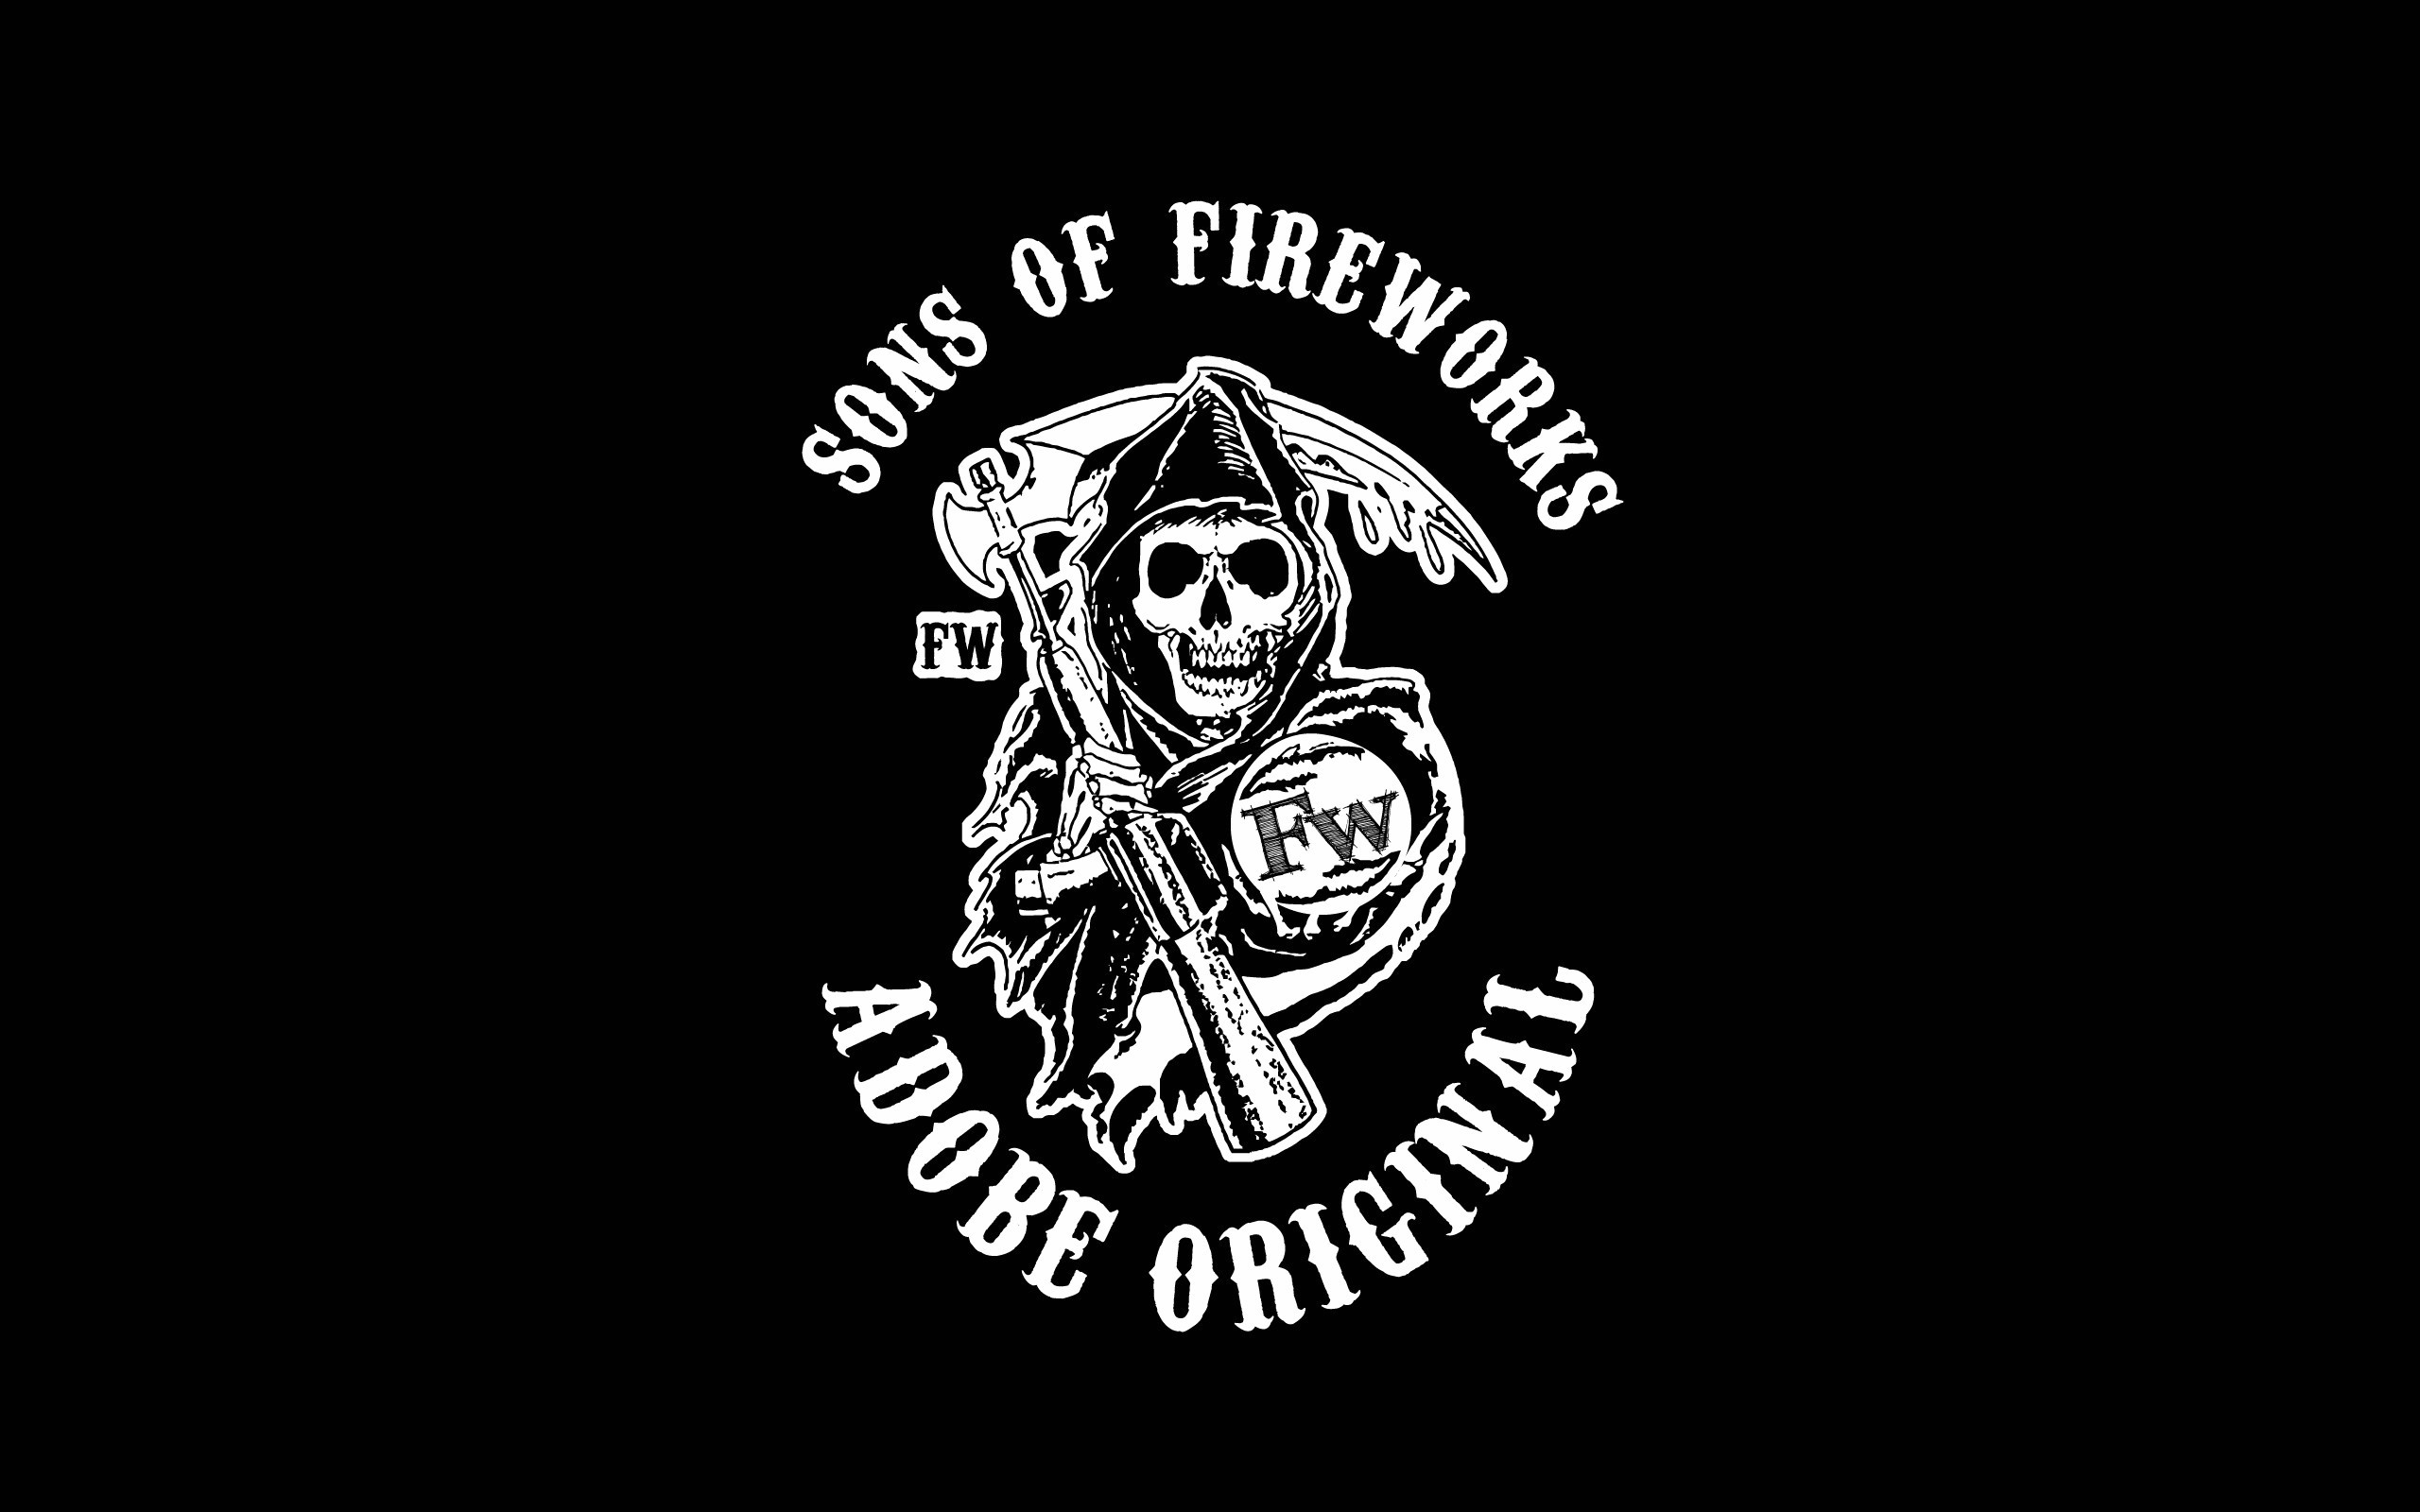 Soa wallpapers 62 background pictures - Soa wallpaper iphone ...